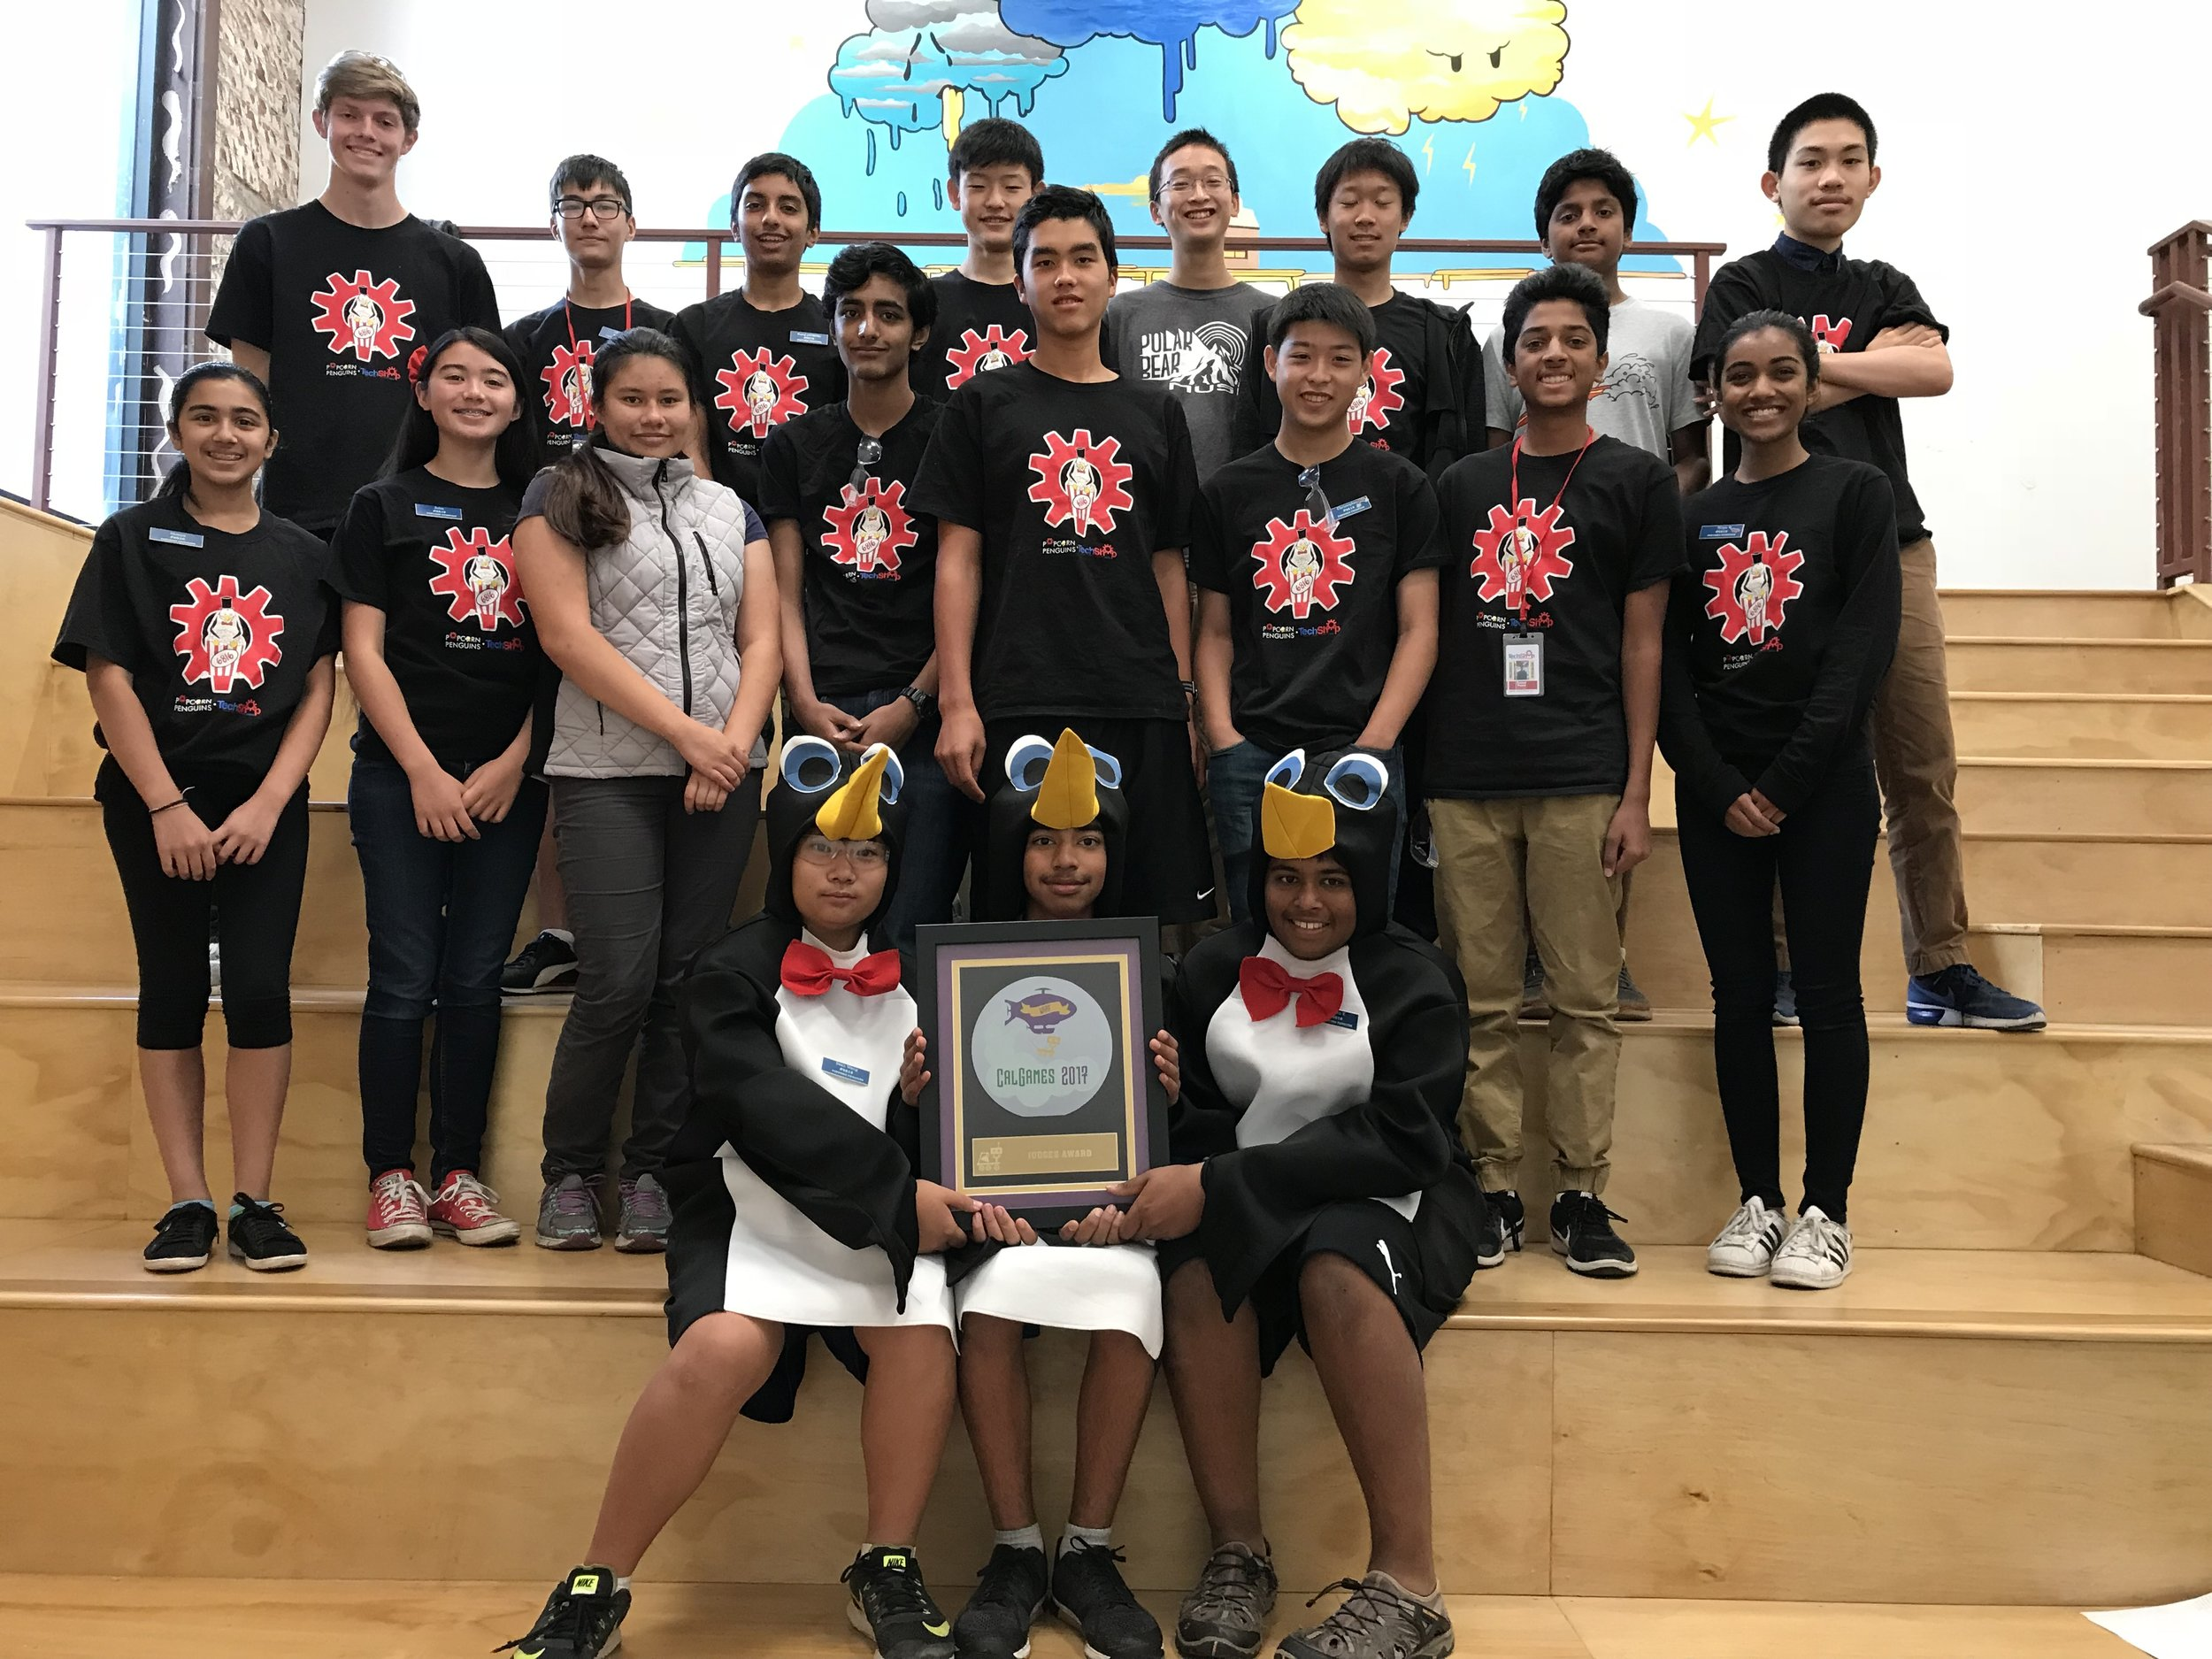 Judges Award! - All our hard work during the past months have payed off! At Calgames, we won the Judges Award with our unorthodox yet beautiful wood robot!